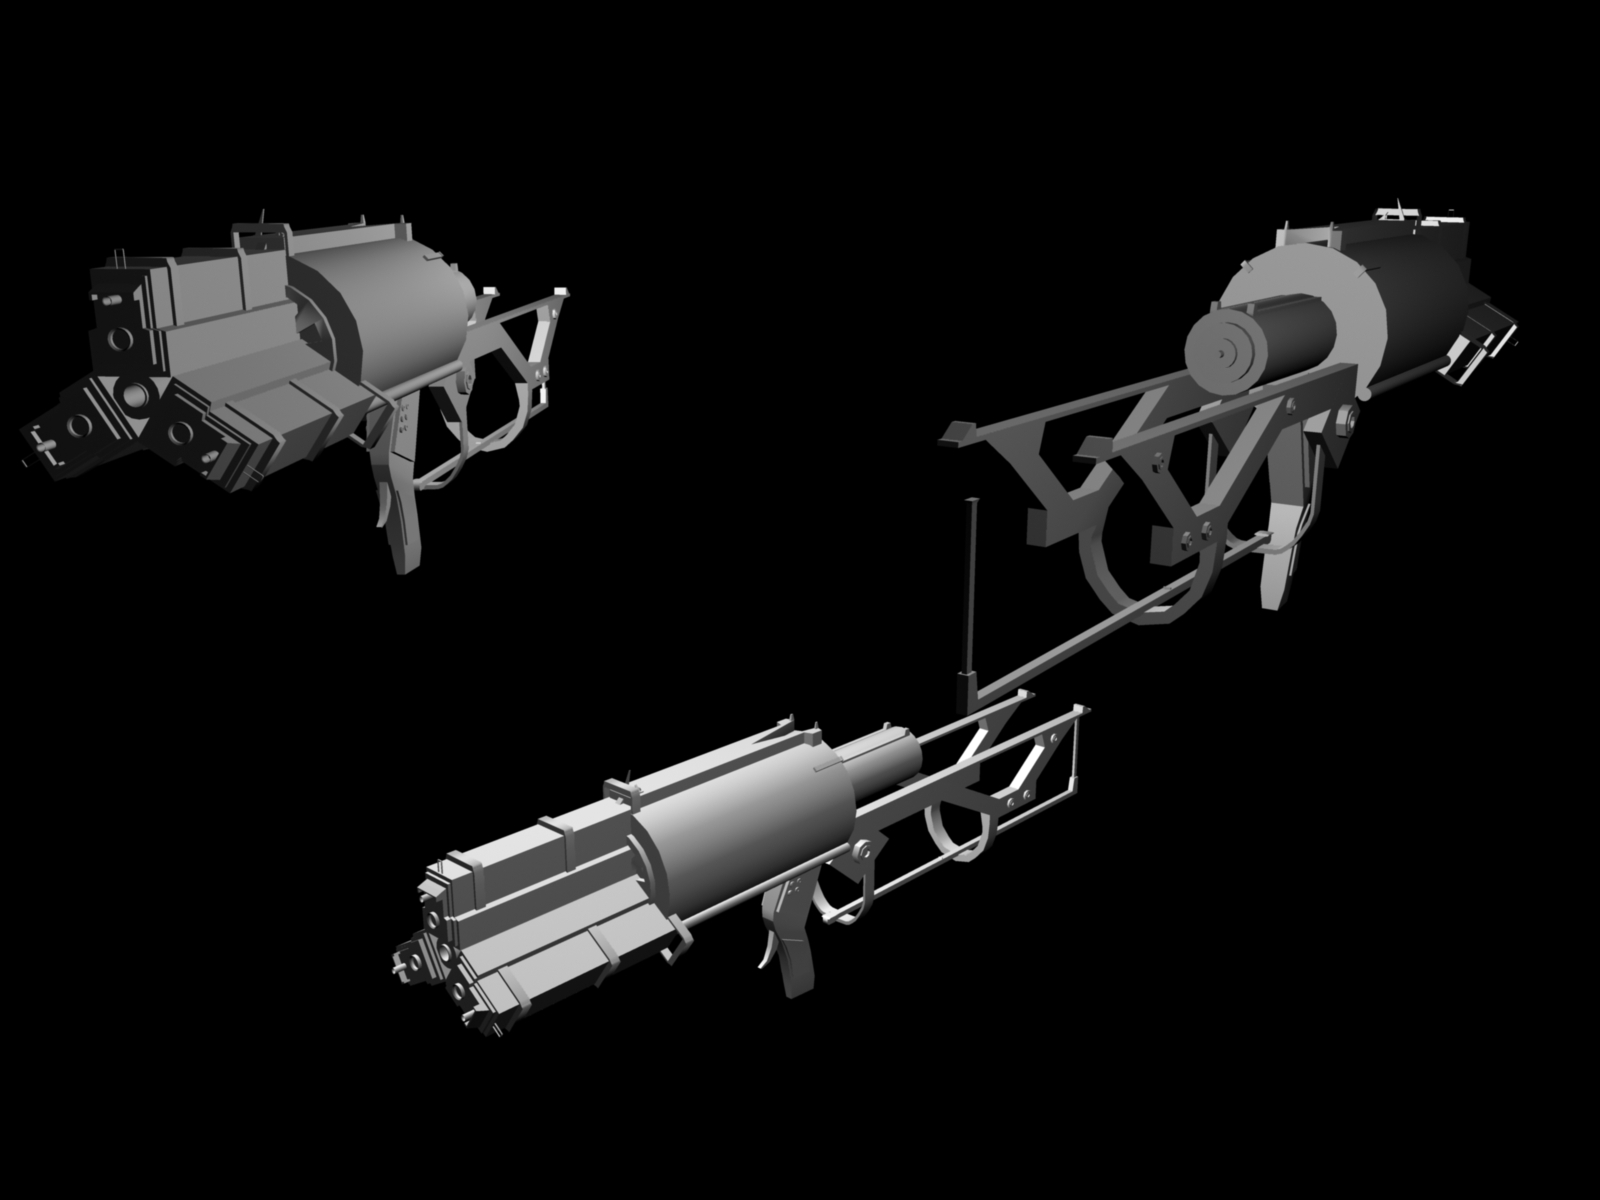 Dead Space 3 Rifle Pulse rifle image - 3D...